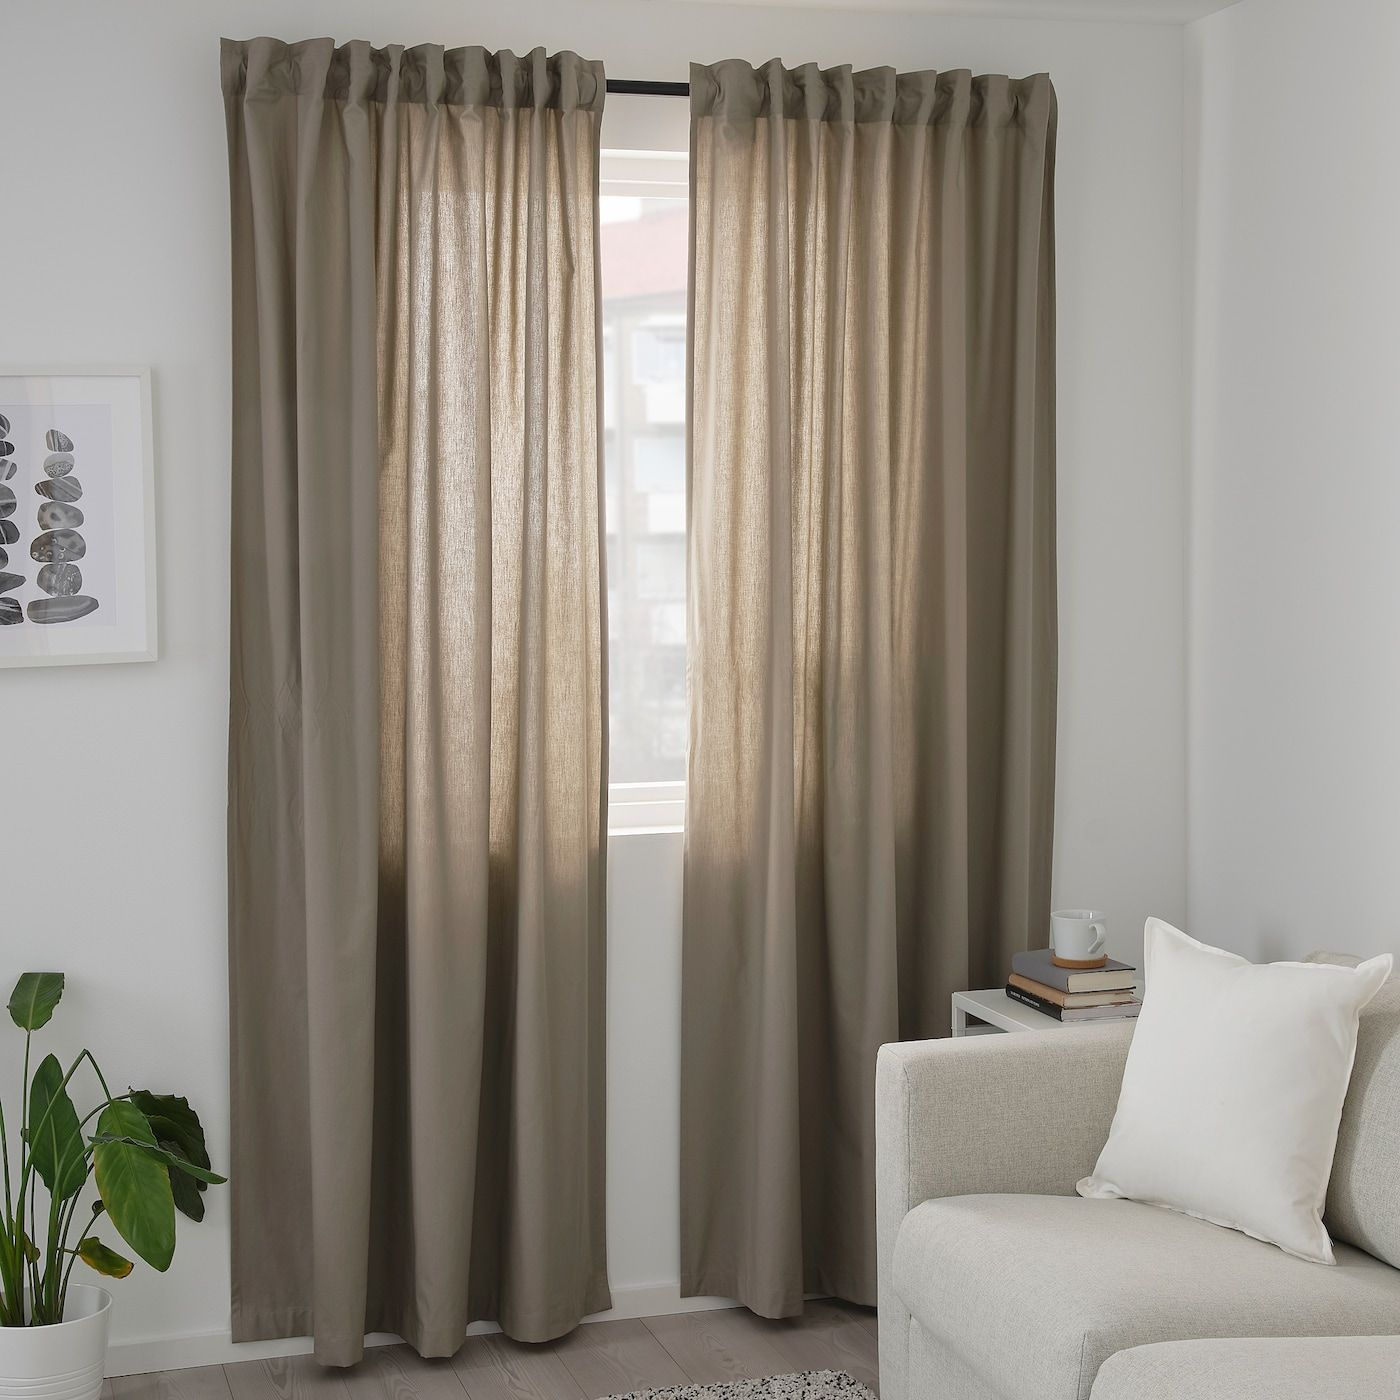 Pin By Bella On Gorden In 2020 Beige Curtains Living Room Room